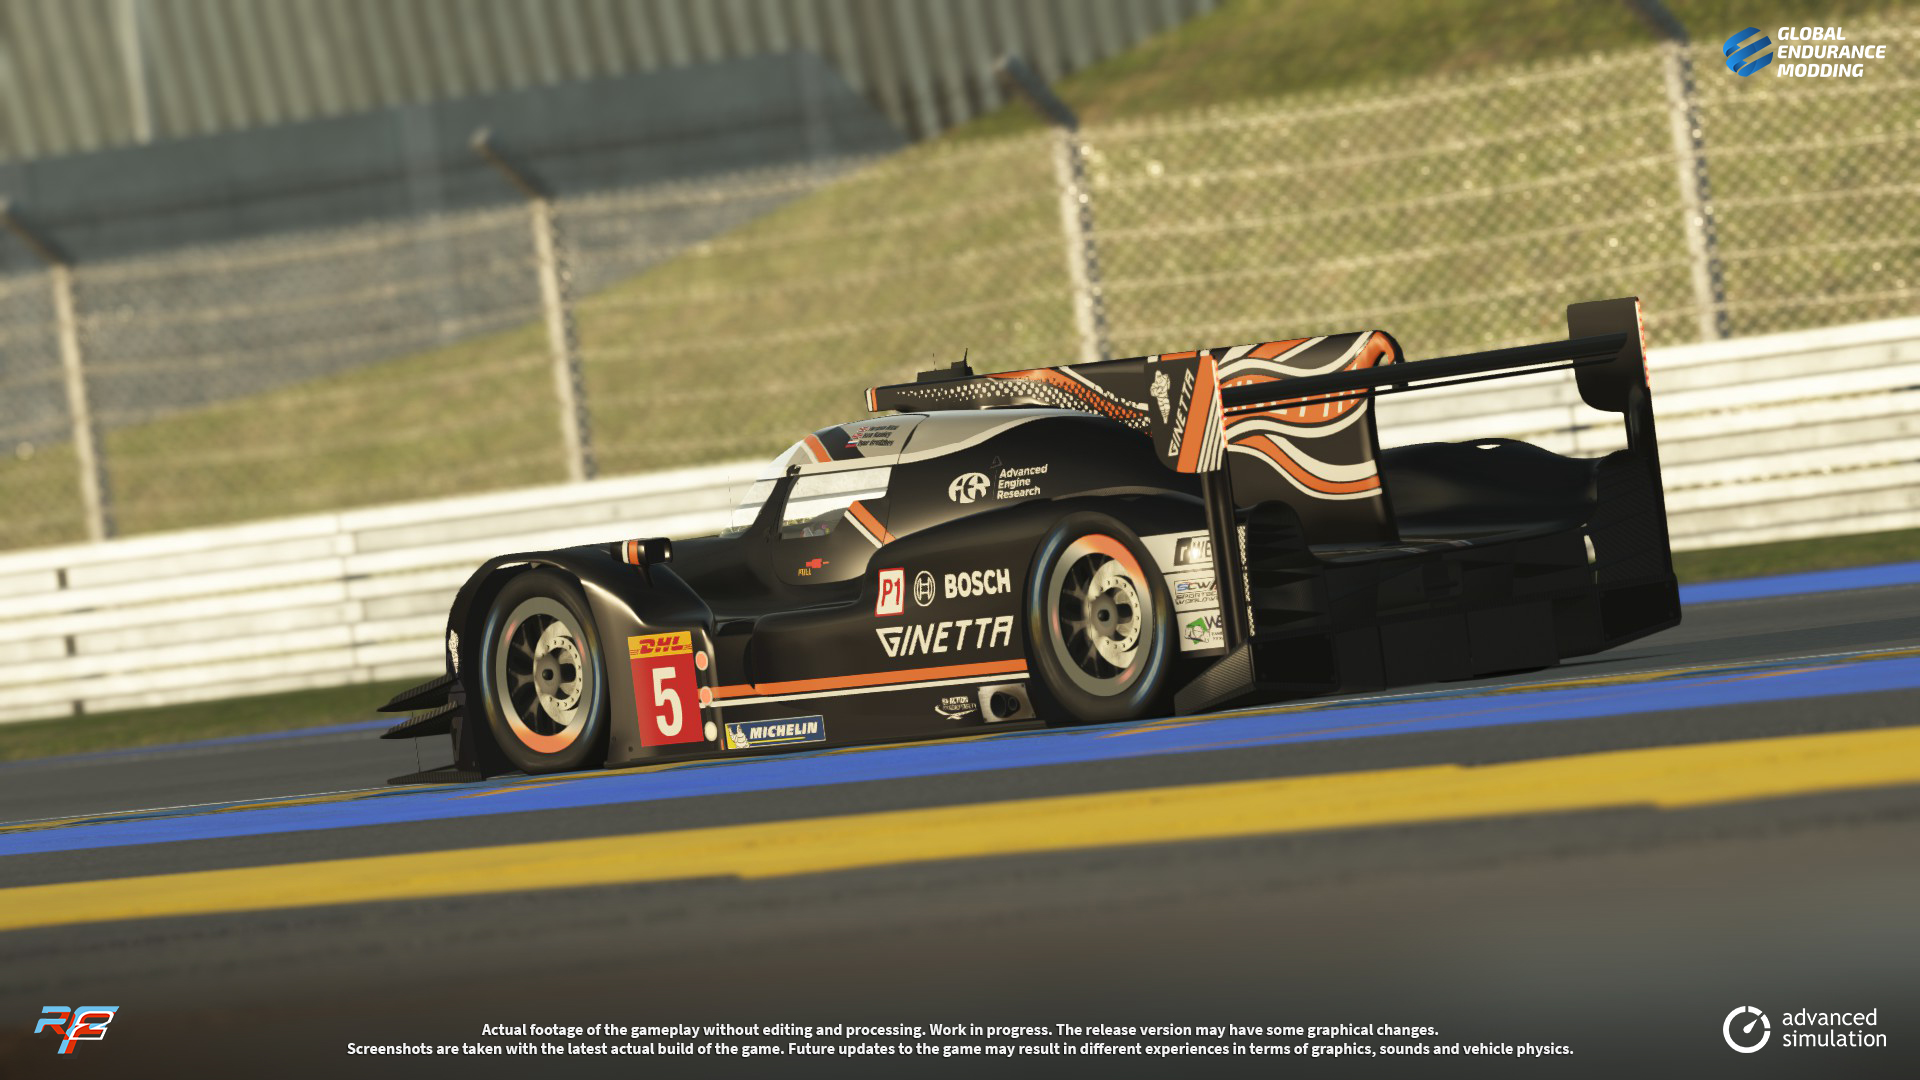 screen-008 Ginetta G60-LT-P1 LMP1 for rFactor 2 – More Previews